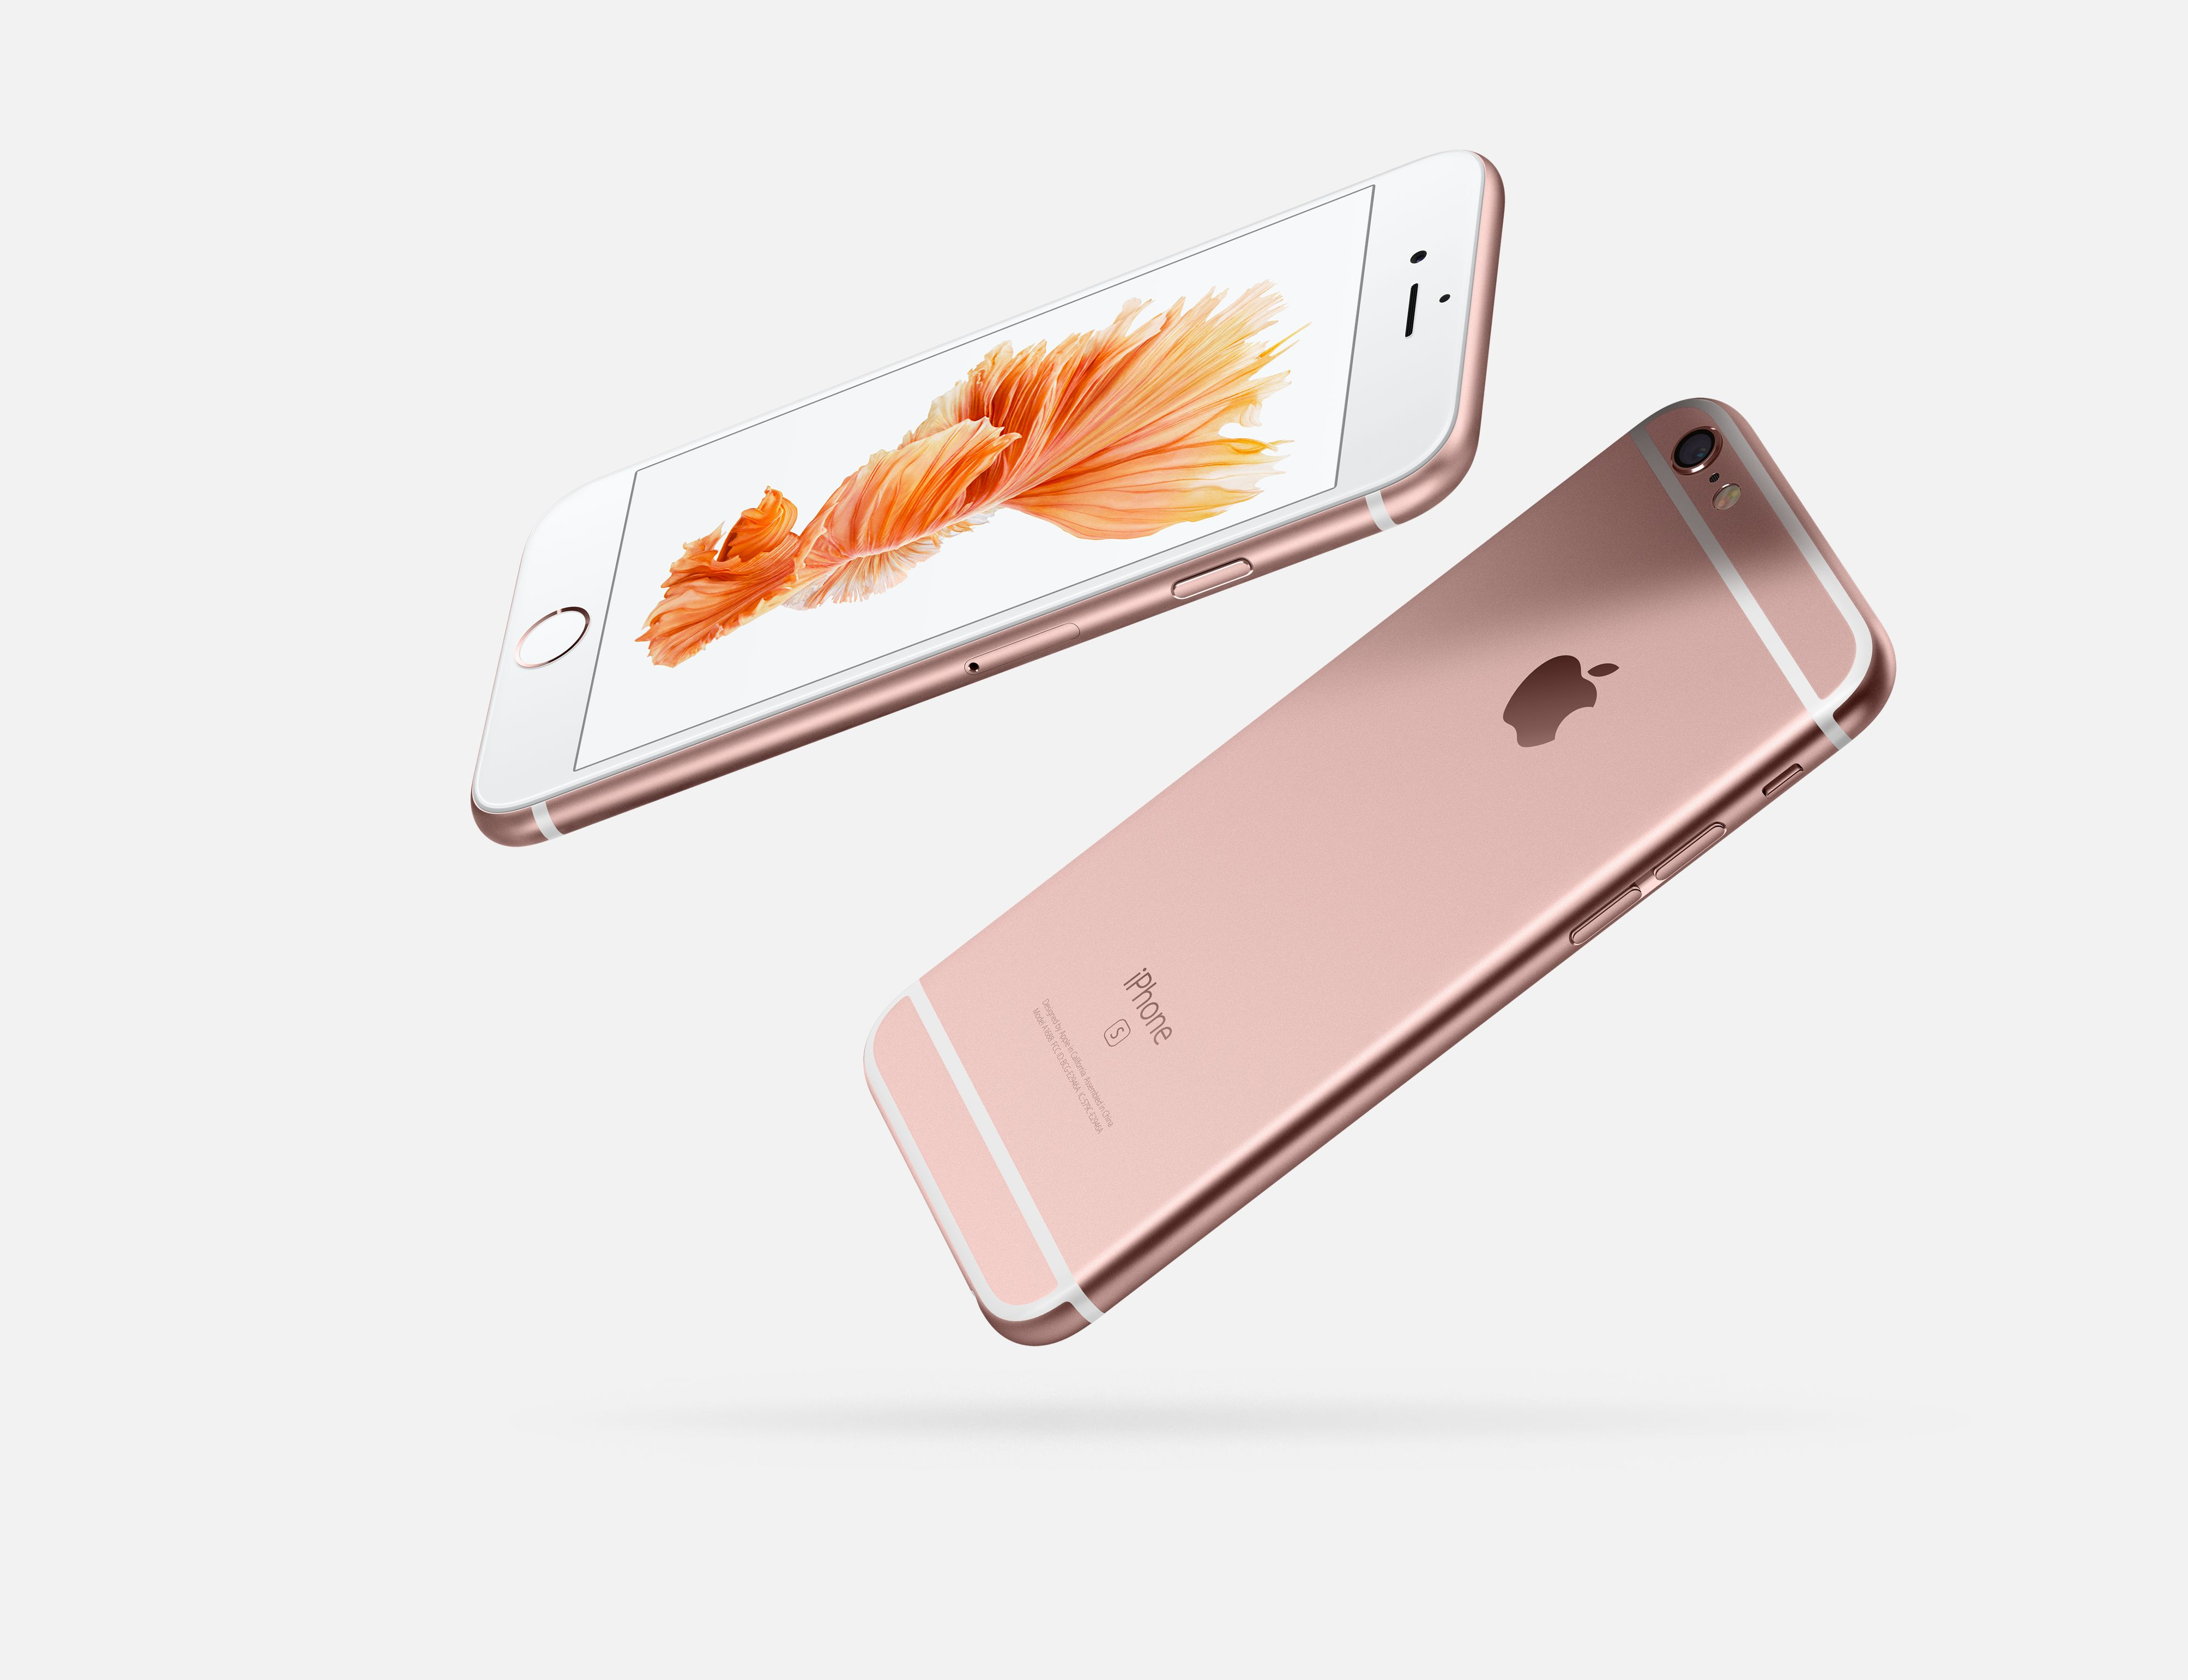 The new Rose Gold iPhone 6S.